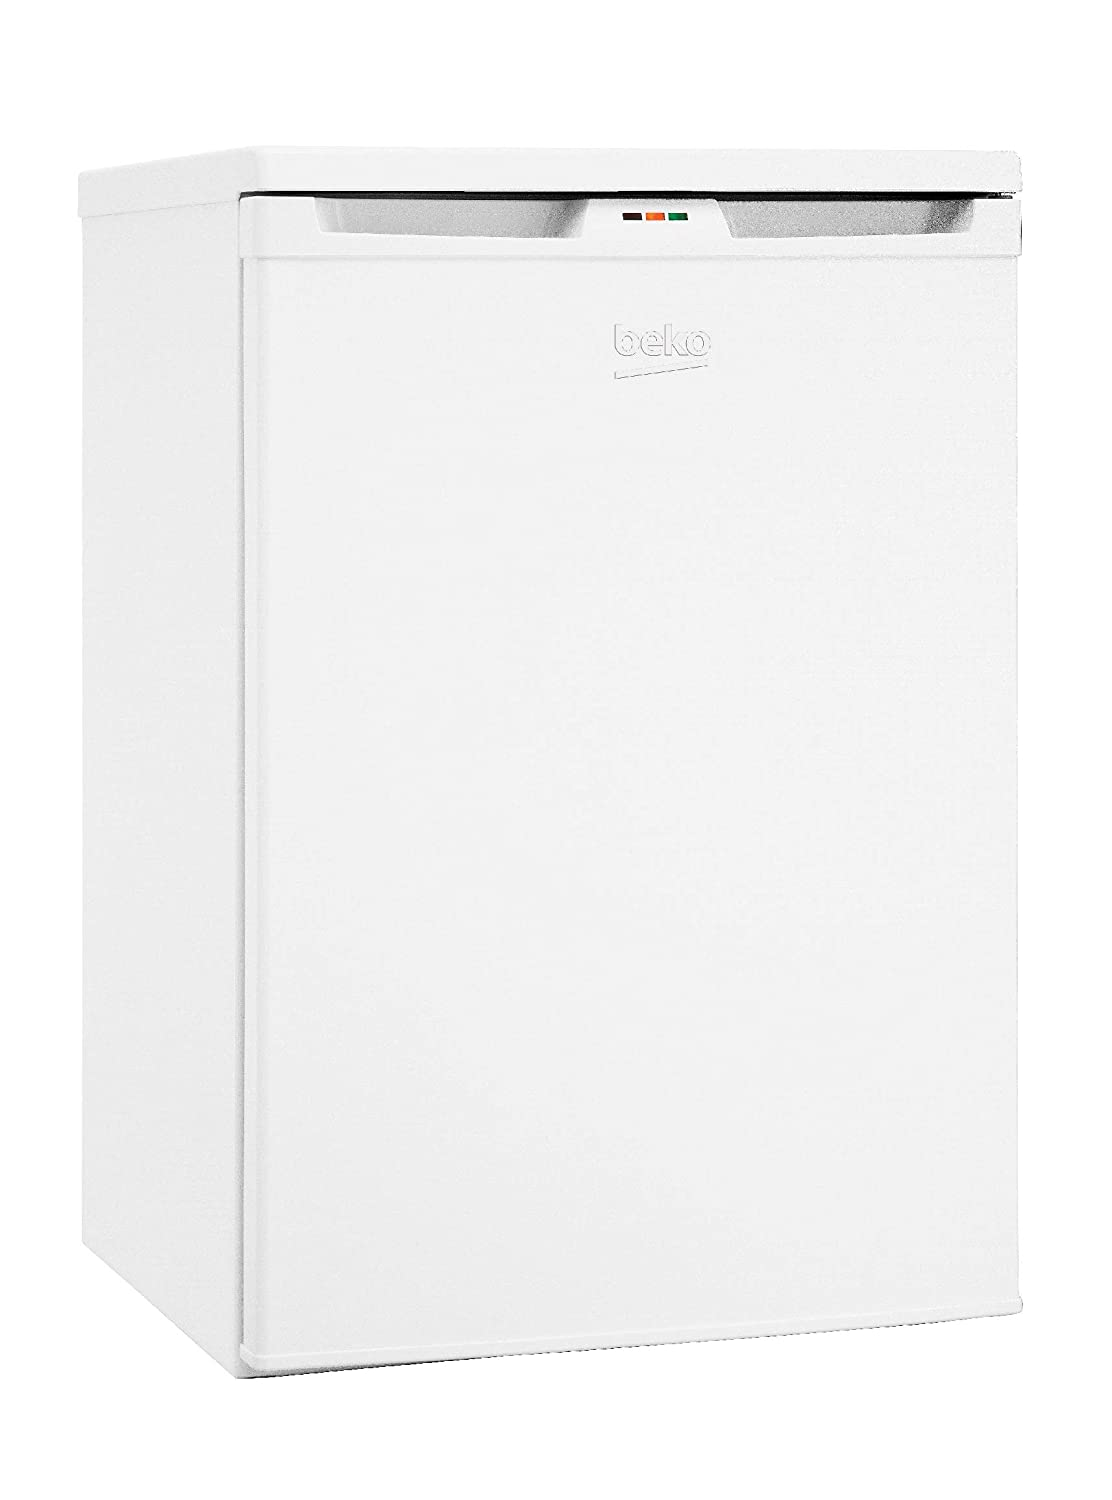 Beko FSE 1072, 181 kWh/year, A+, 39 Db, Blanco, 31500 g, 840 mm ...